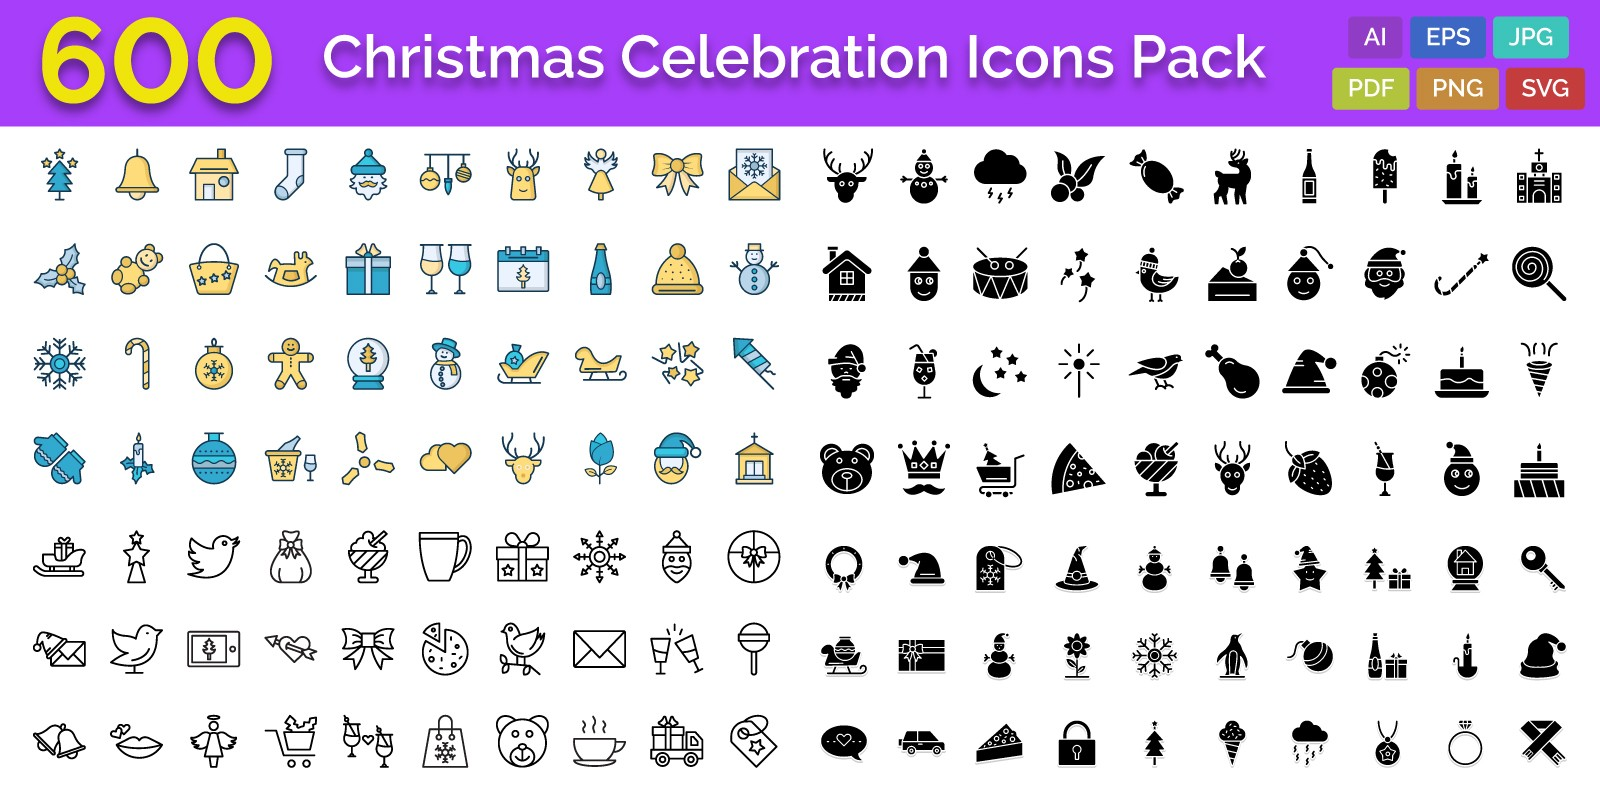 600 Christmas Celebration Vector Icons Pack